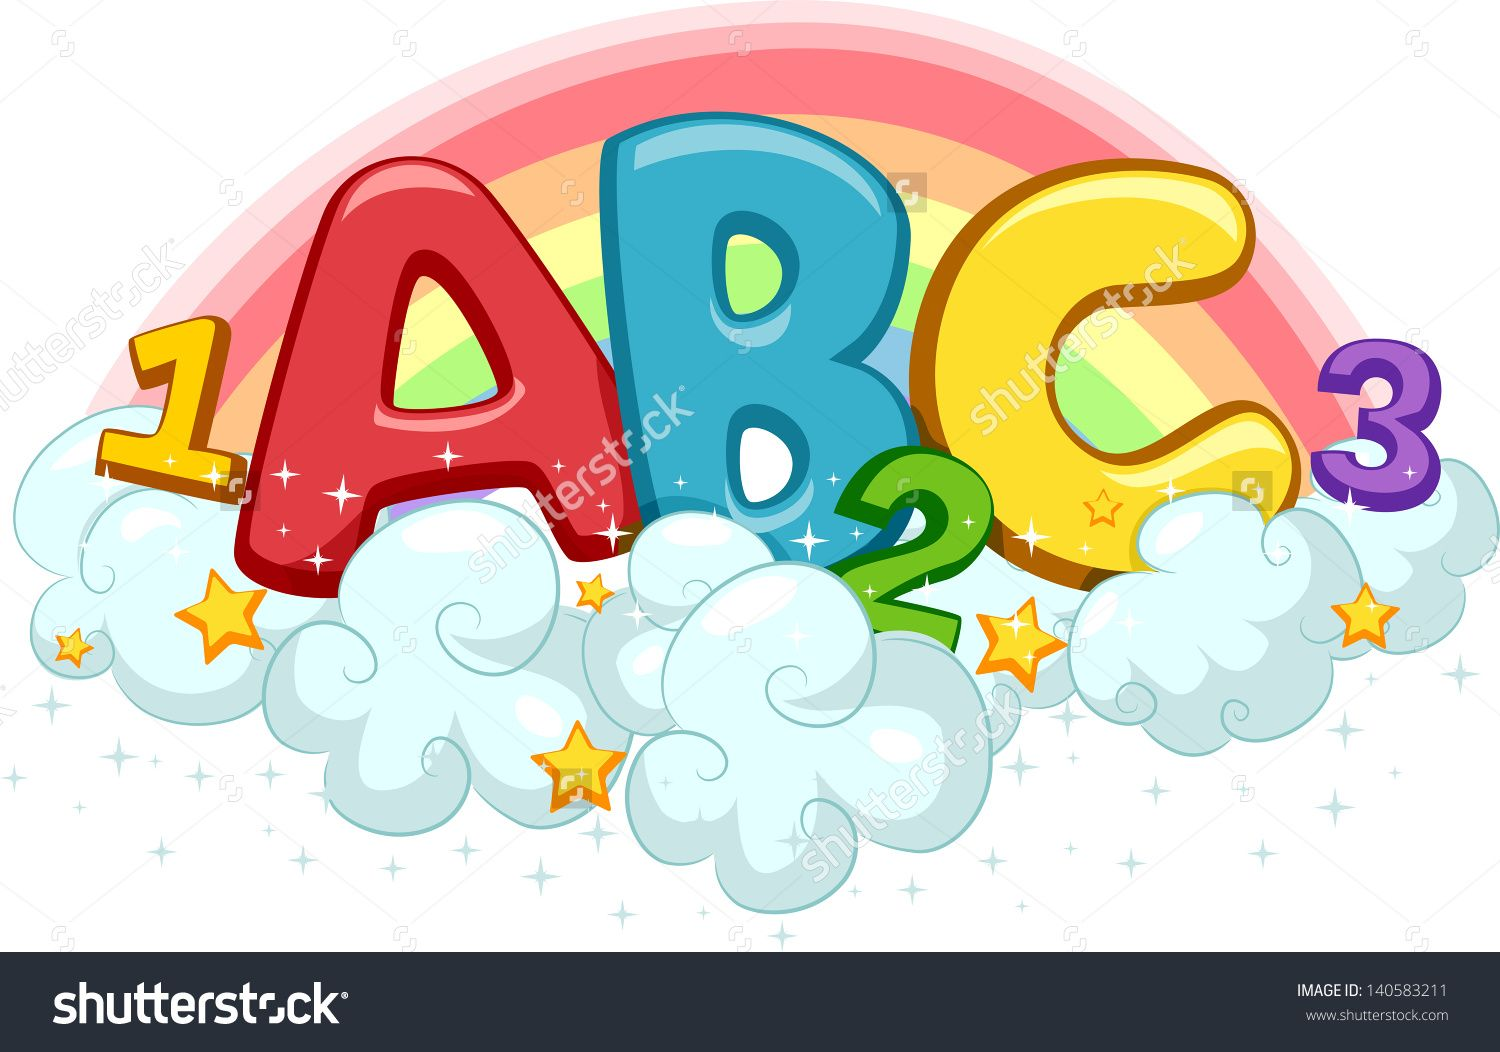 Pin on projects to. Abc clipart illustration